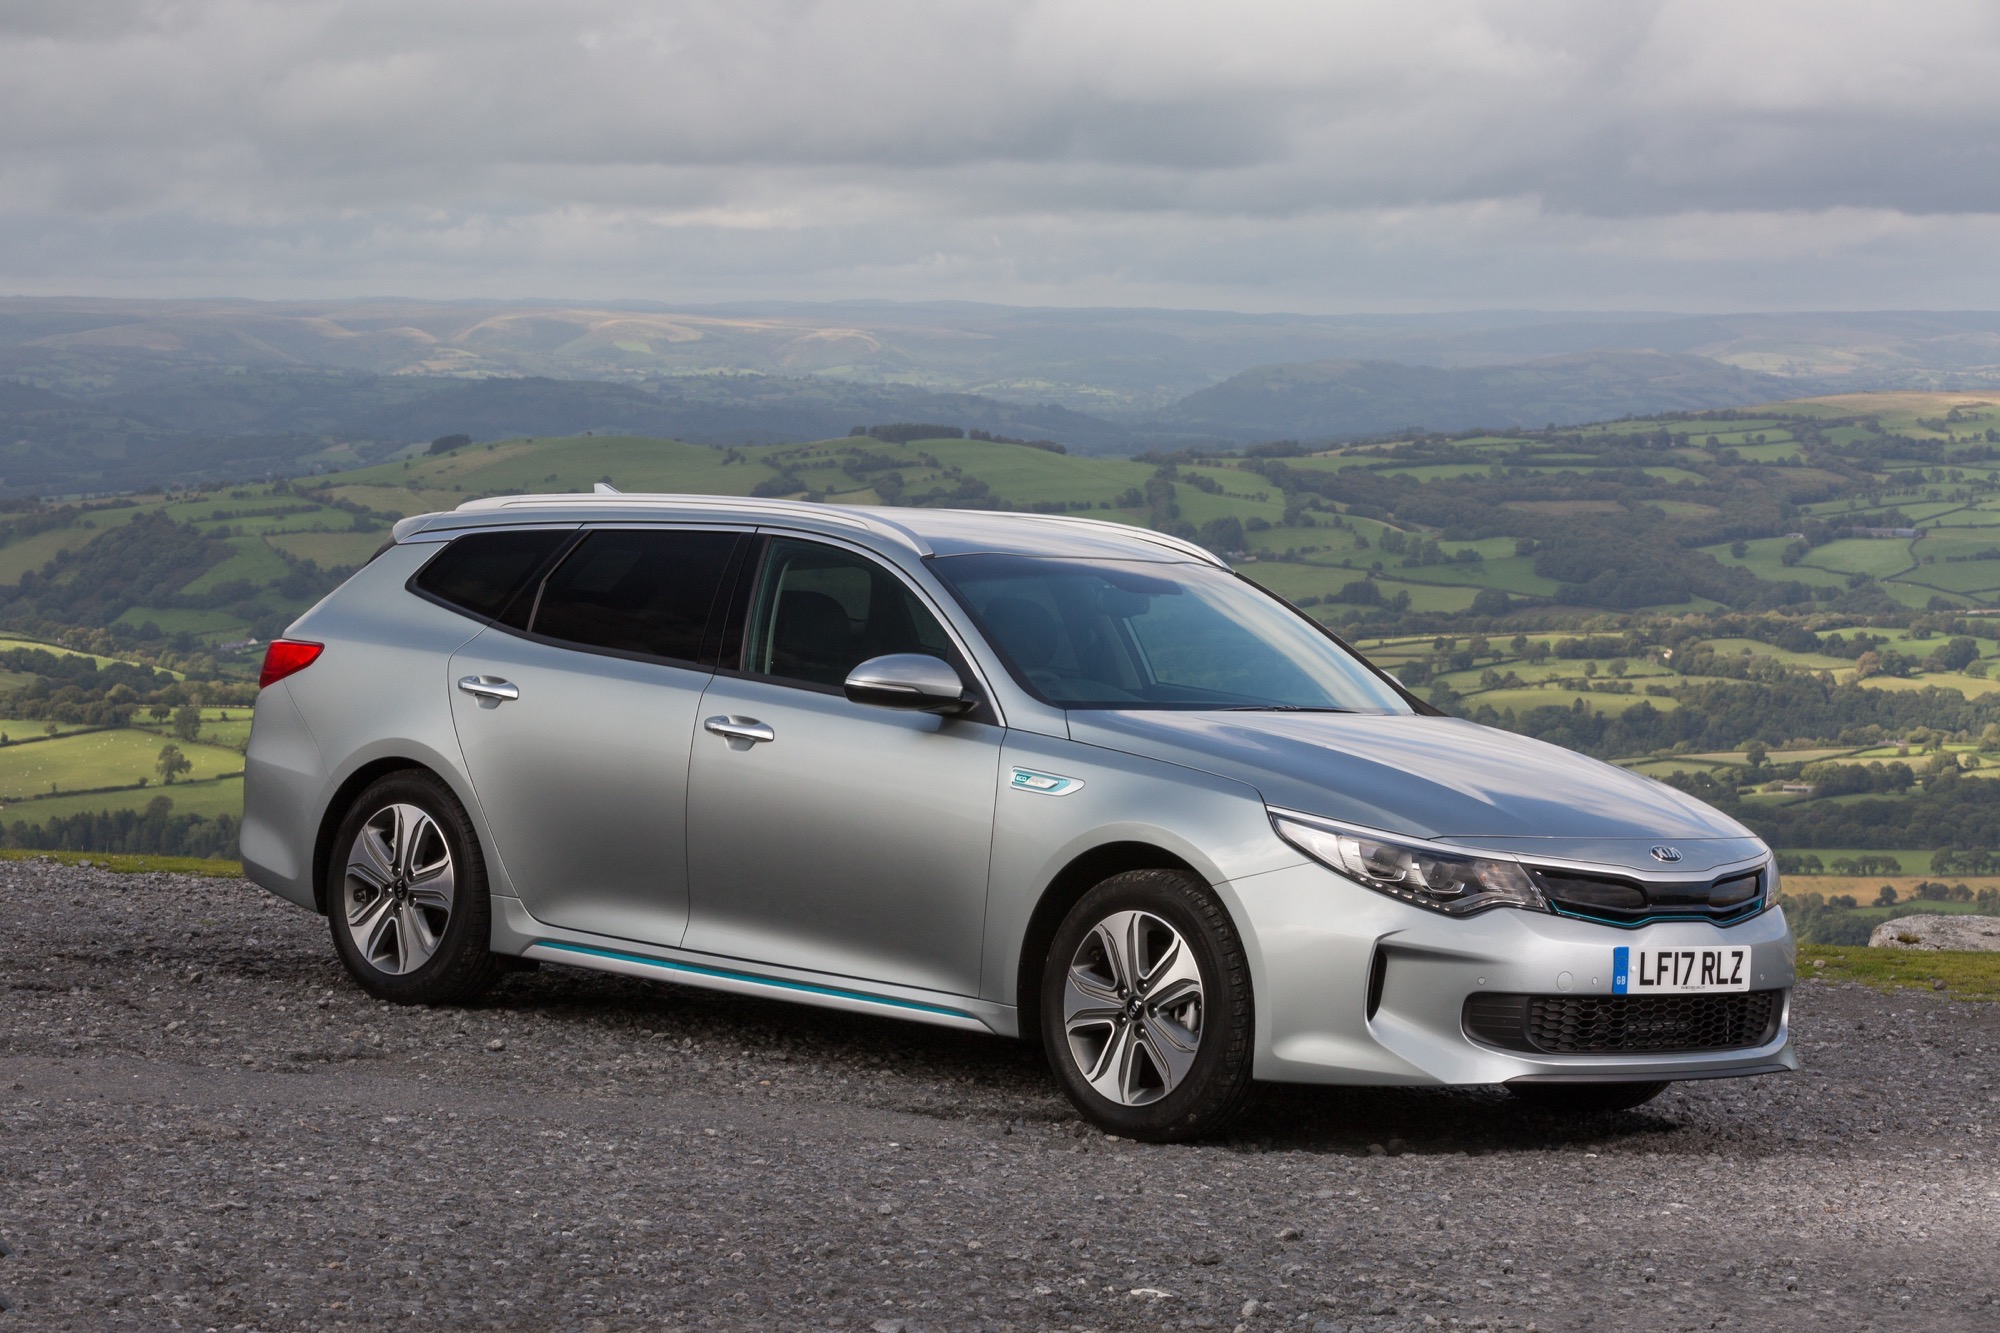 2018_Kia_Optima_Sportswagon_PHEV_01